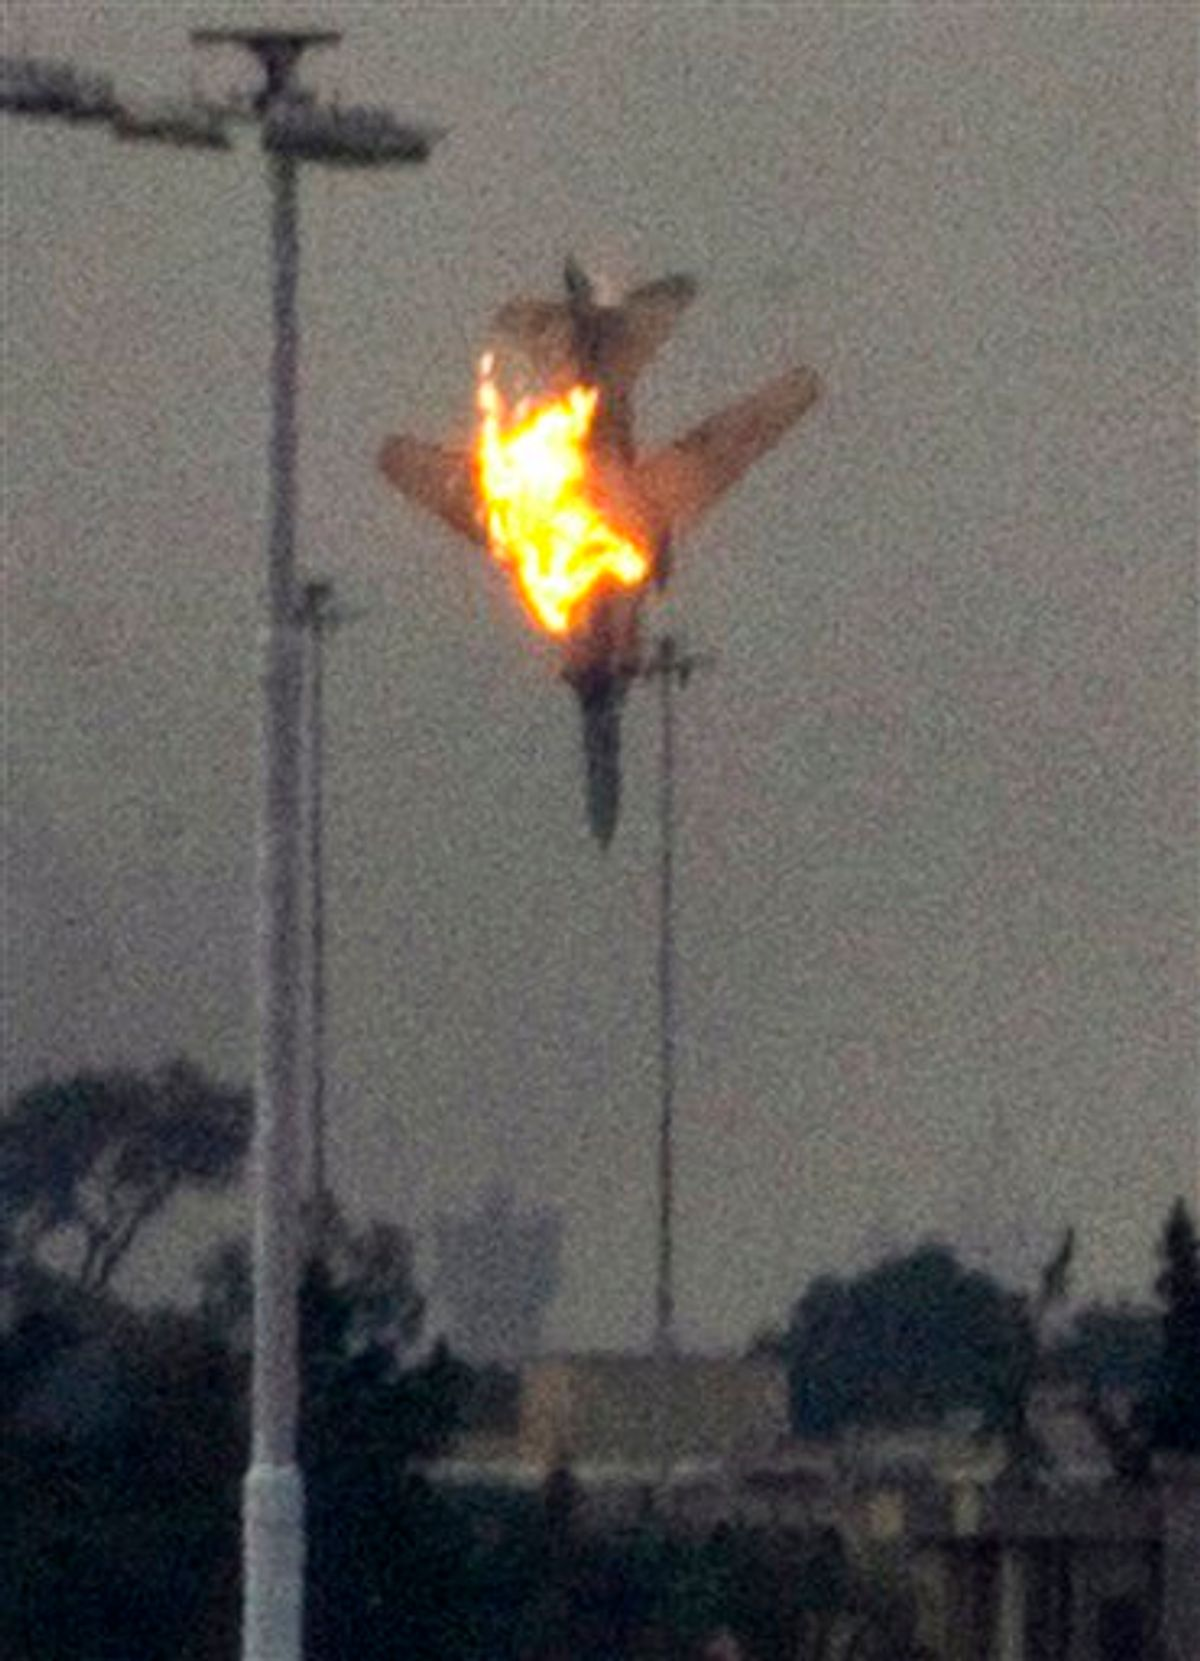 ALTERNATIVE CROP - A doomed warplane plummets towards earth after it was shot down by anti-Gadhafi forces over the outskirts of Benghazi, eastern Libya, Saturday, March 19, 2011.  An object, thought to be the pilot, was seen to eject from the cockpit shortly before impact.  Explosions shook the Libyan city of Benghazi early on Saturday while a fighter jet was heard flying overhead, and residents said the eastern rebel stronghold was under attack from  forces loyal to Libyan leader Moammar Gadhafi. (AP Photo/Anja Niedringhaus) (AP)